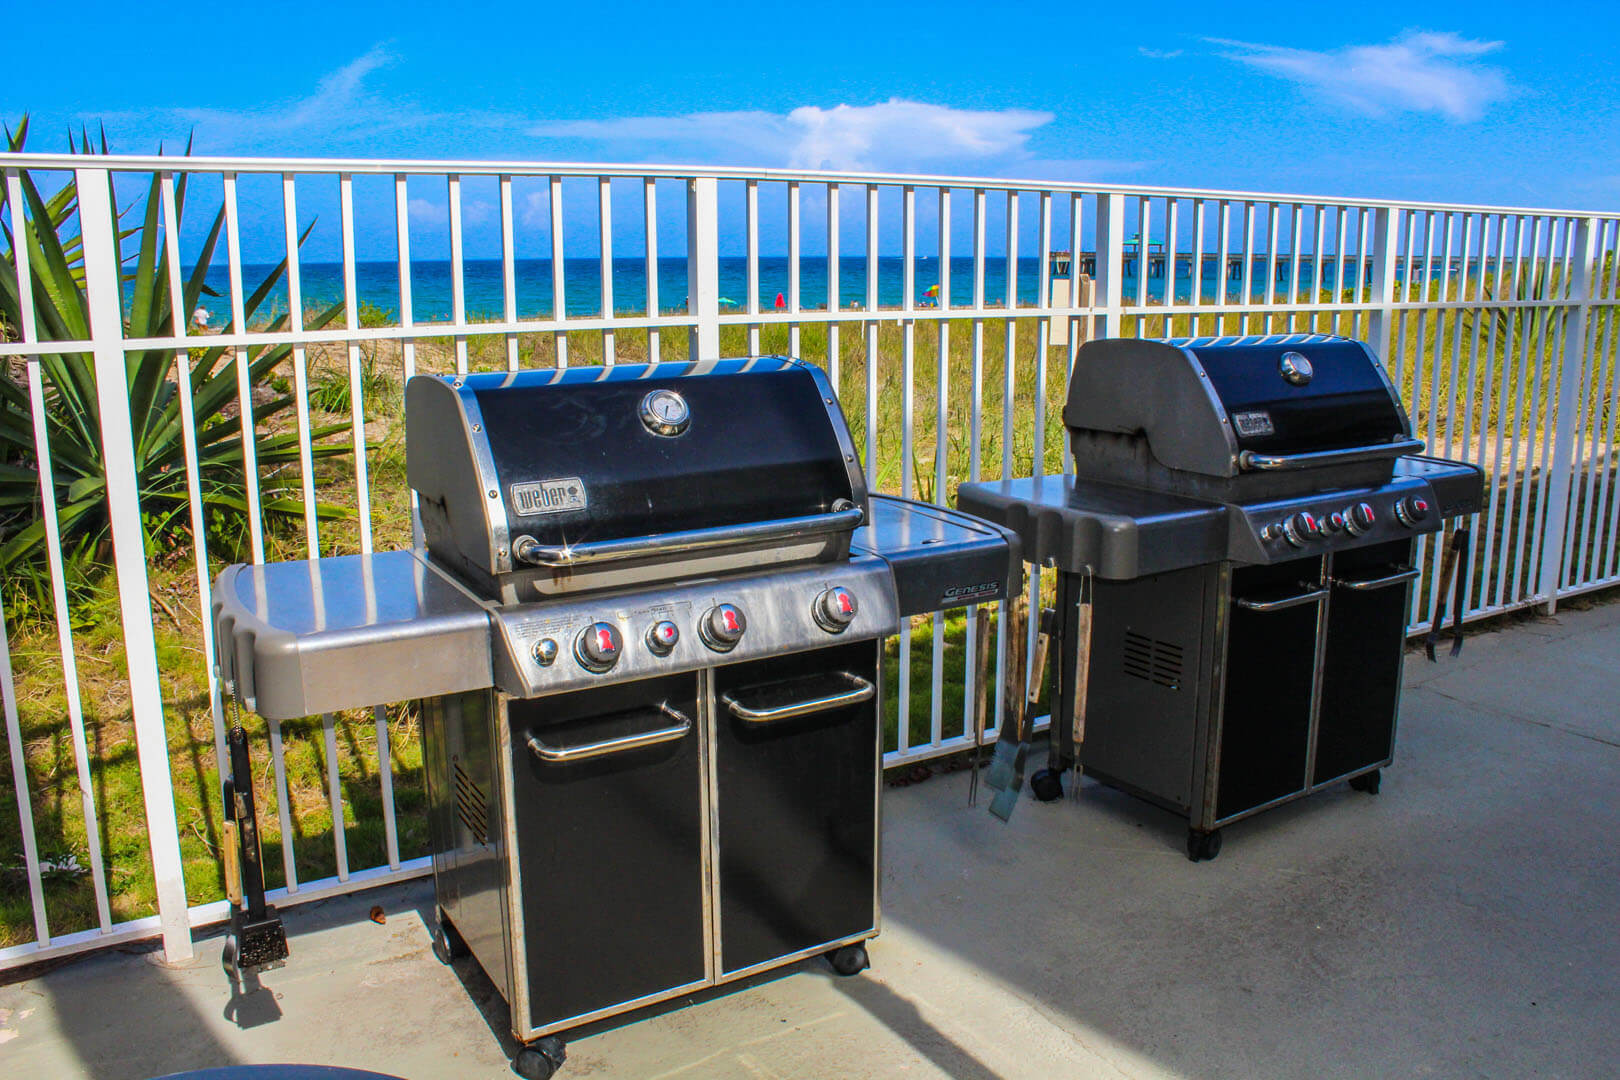 Birkshire Beach Club BBQ Grills